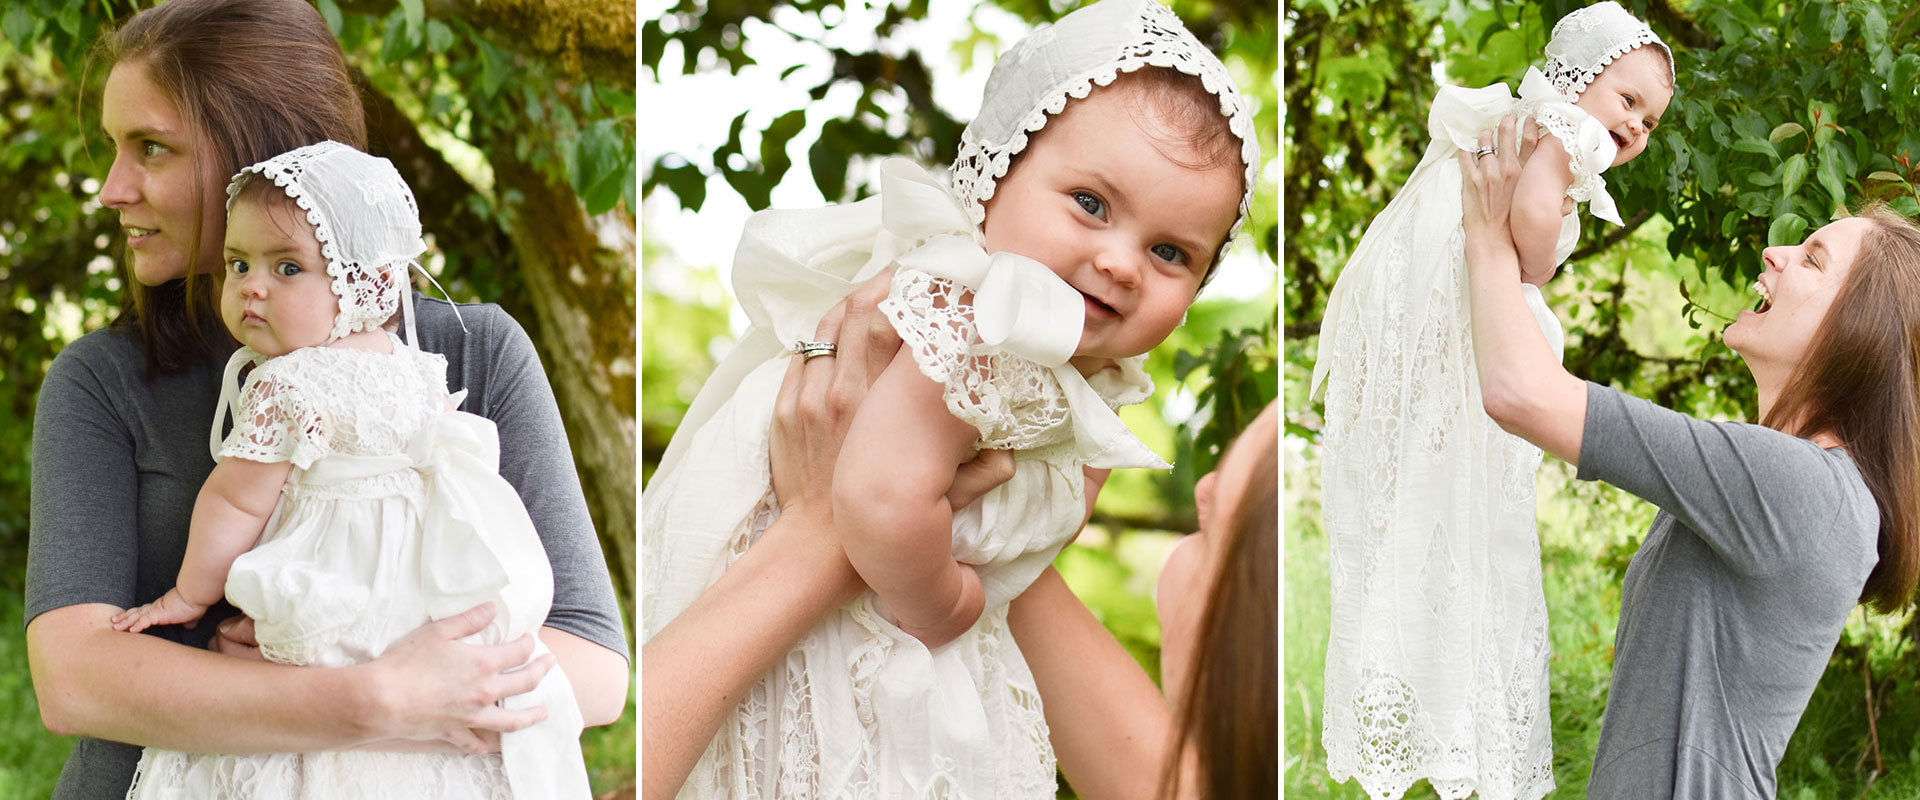 266e6585a Christening Gowns and Baptism Outfits – Christeninggowns.com.